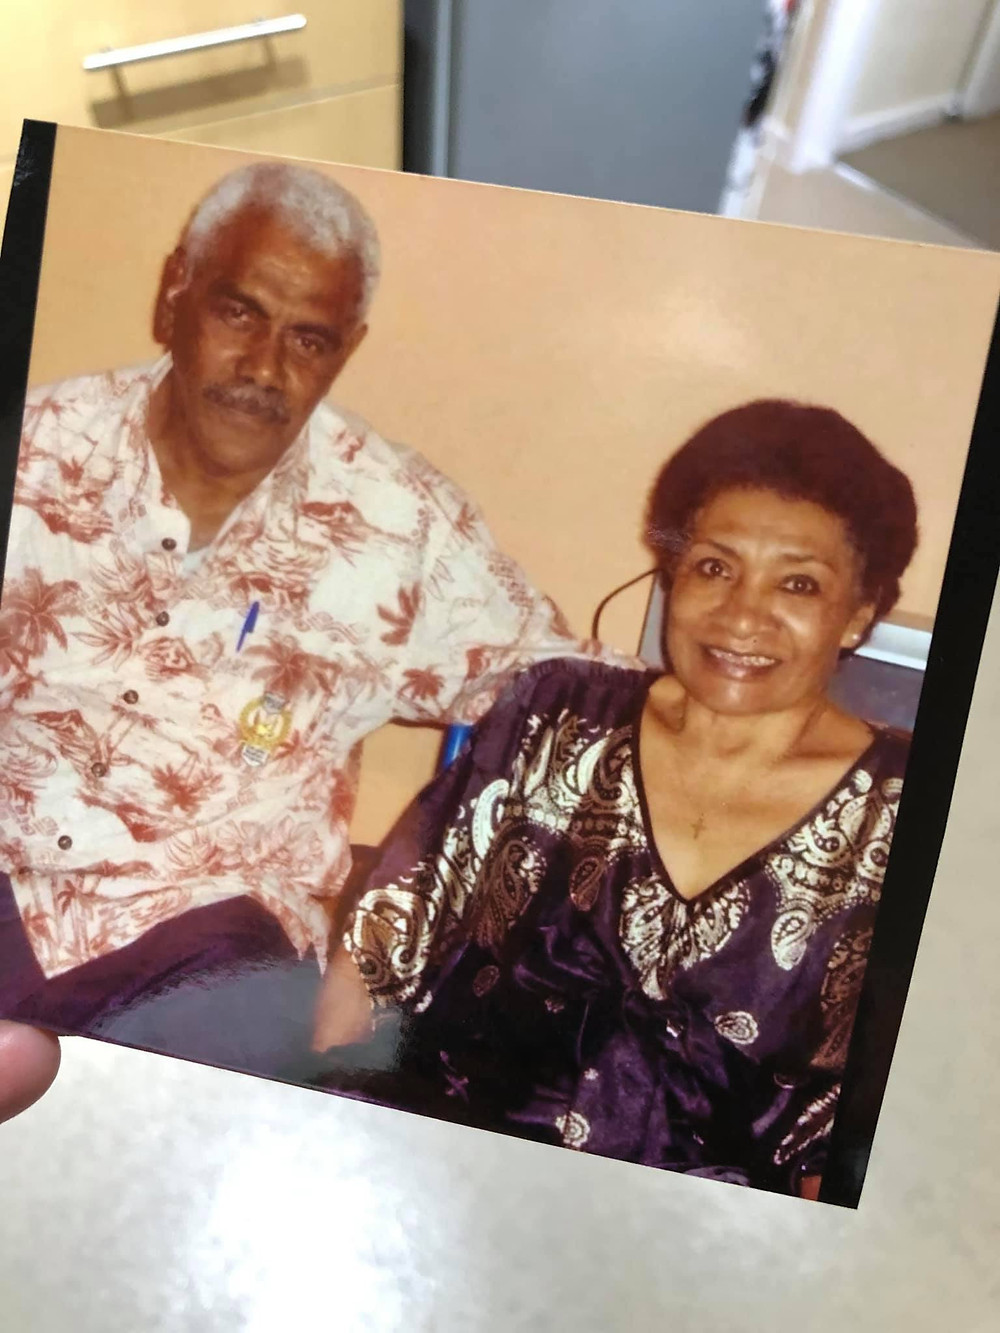 Fijian In The UK - My parents on their 40th anniversary